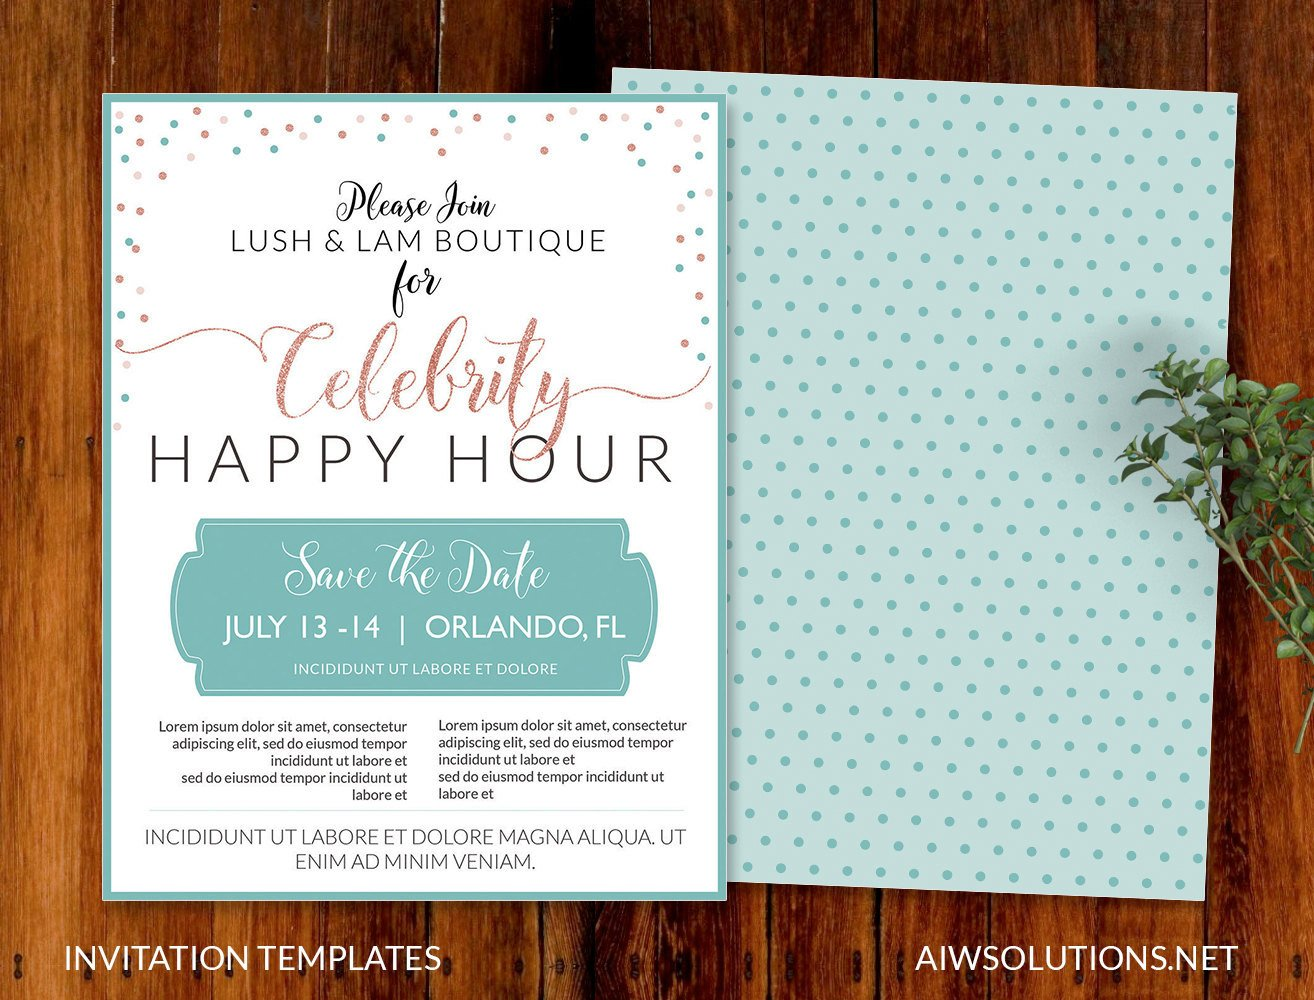 Happy Hour Invitation Template Product Promotion Flyer A4 Flyer Presentation Flyer